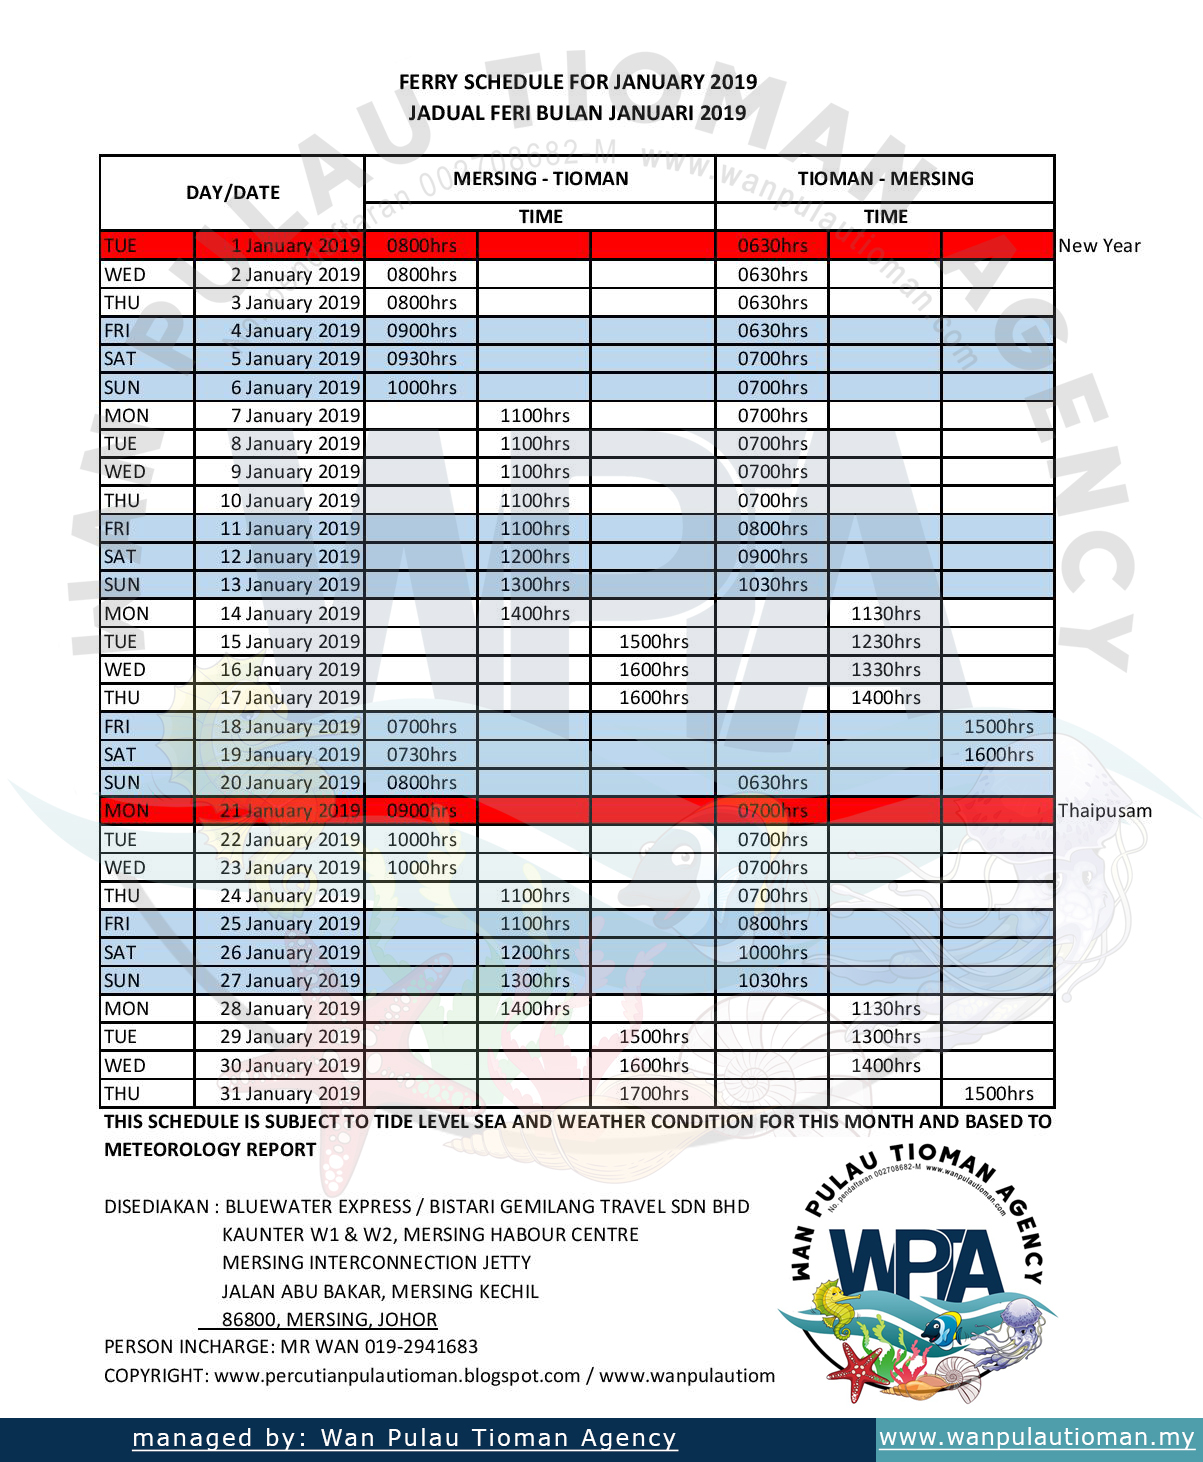 Tioman Transfer Ferry Schedule January 2019